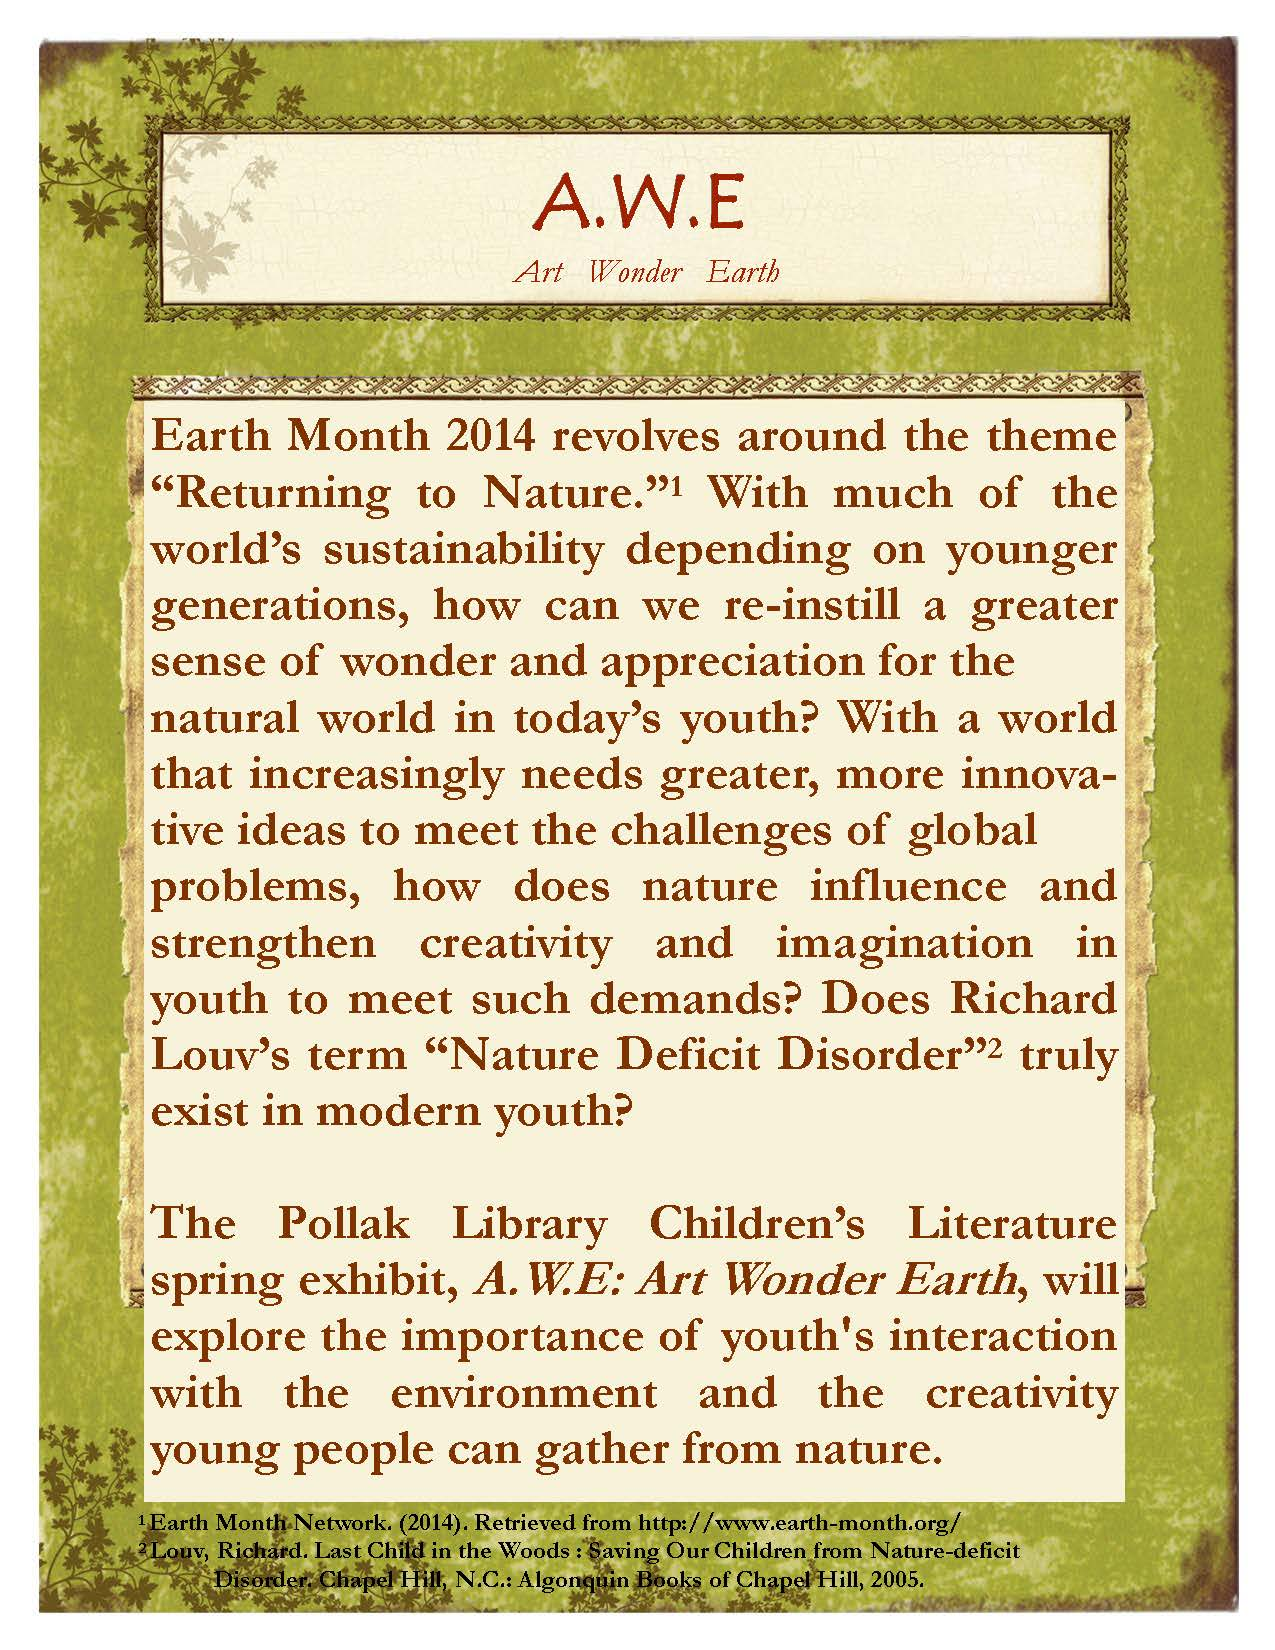 AWE exhibit description